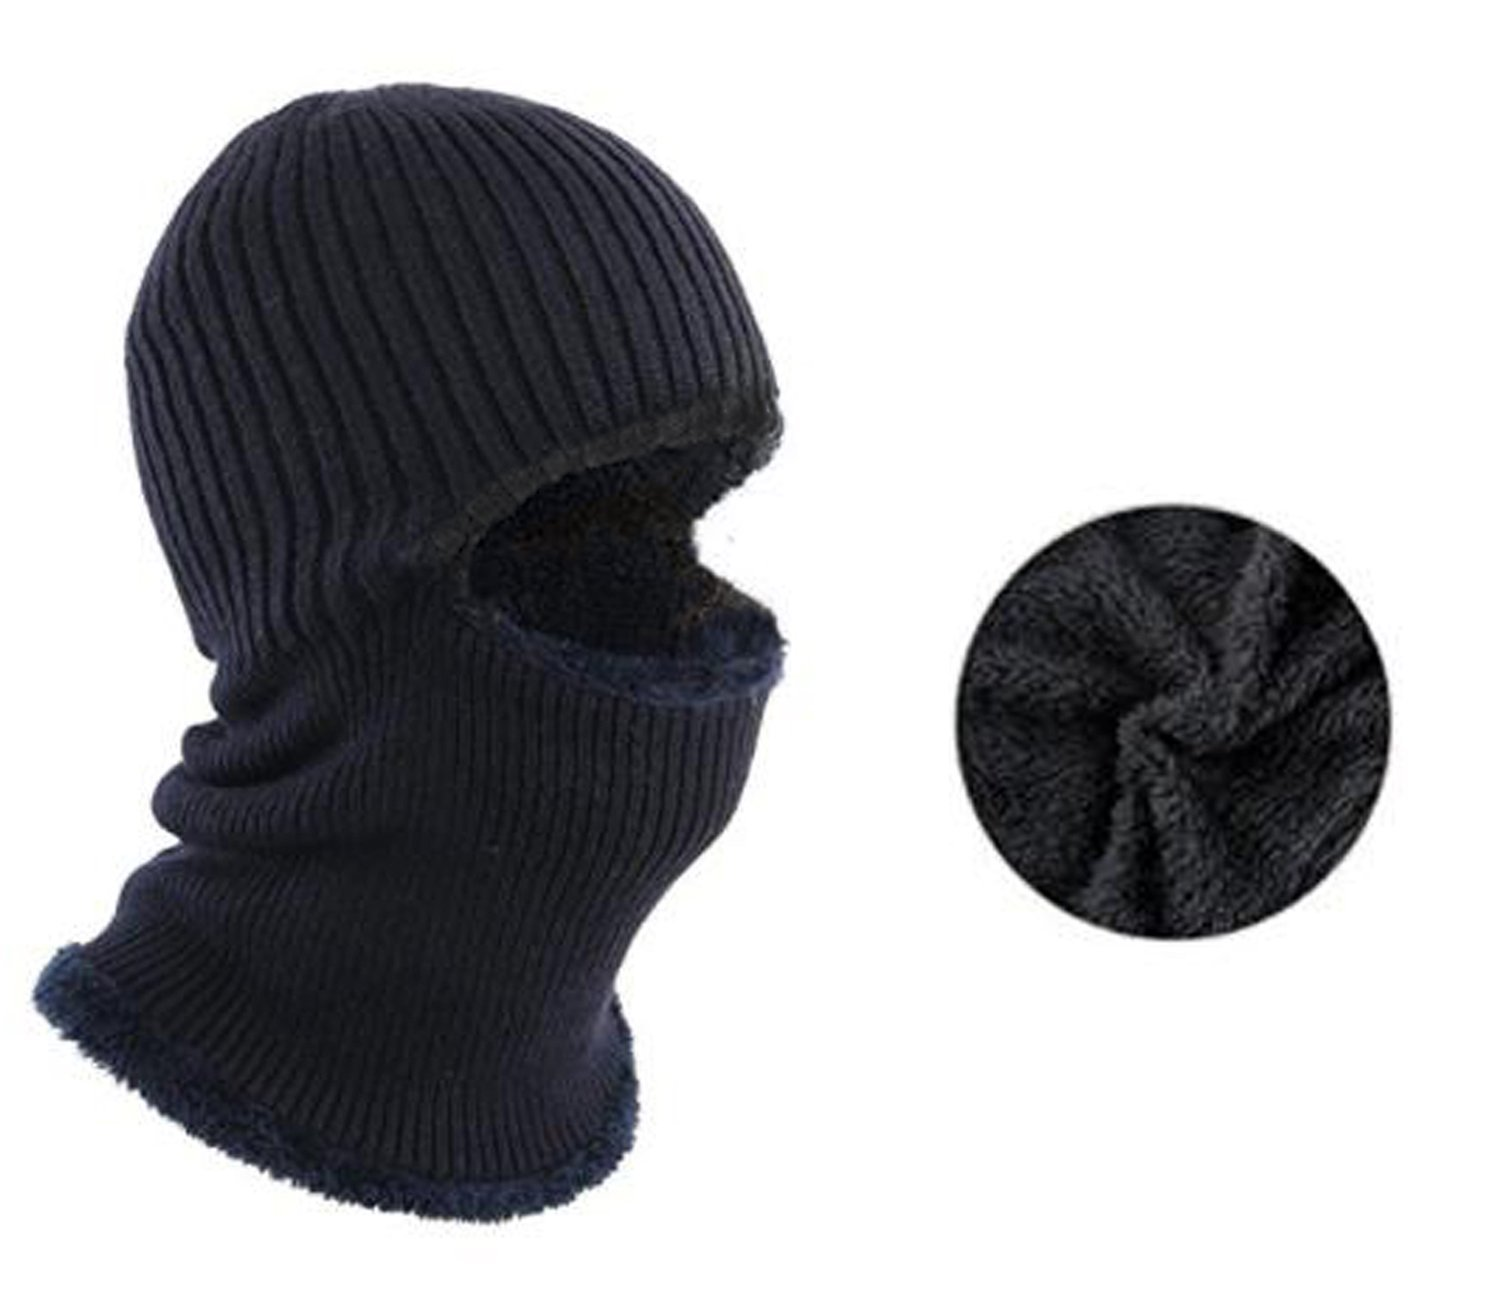 c0e29fa04a9 Get Quotations · FOCUSAIRY Ski Mask Windproof Winter Hats for Skiing  Snowboarding Hiking Cycling